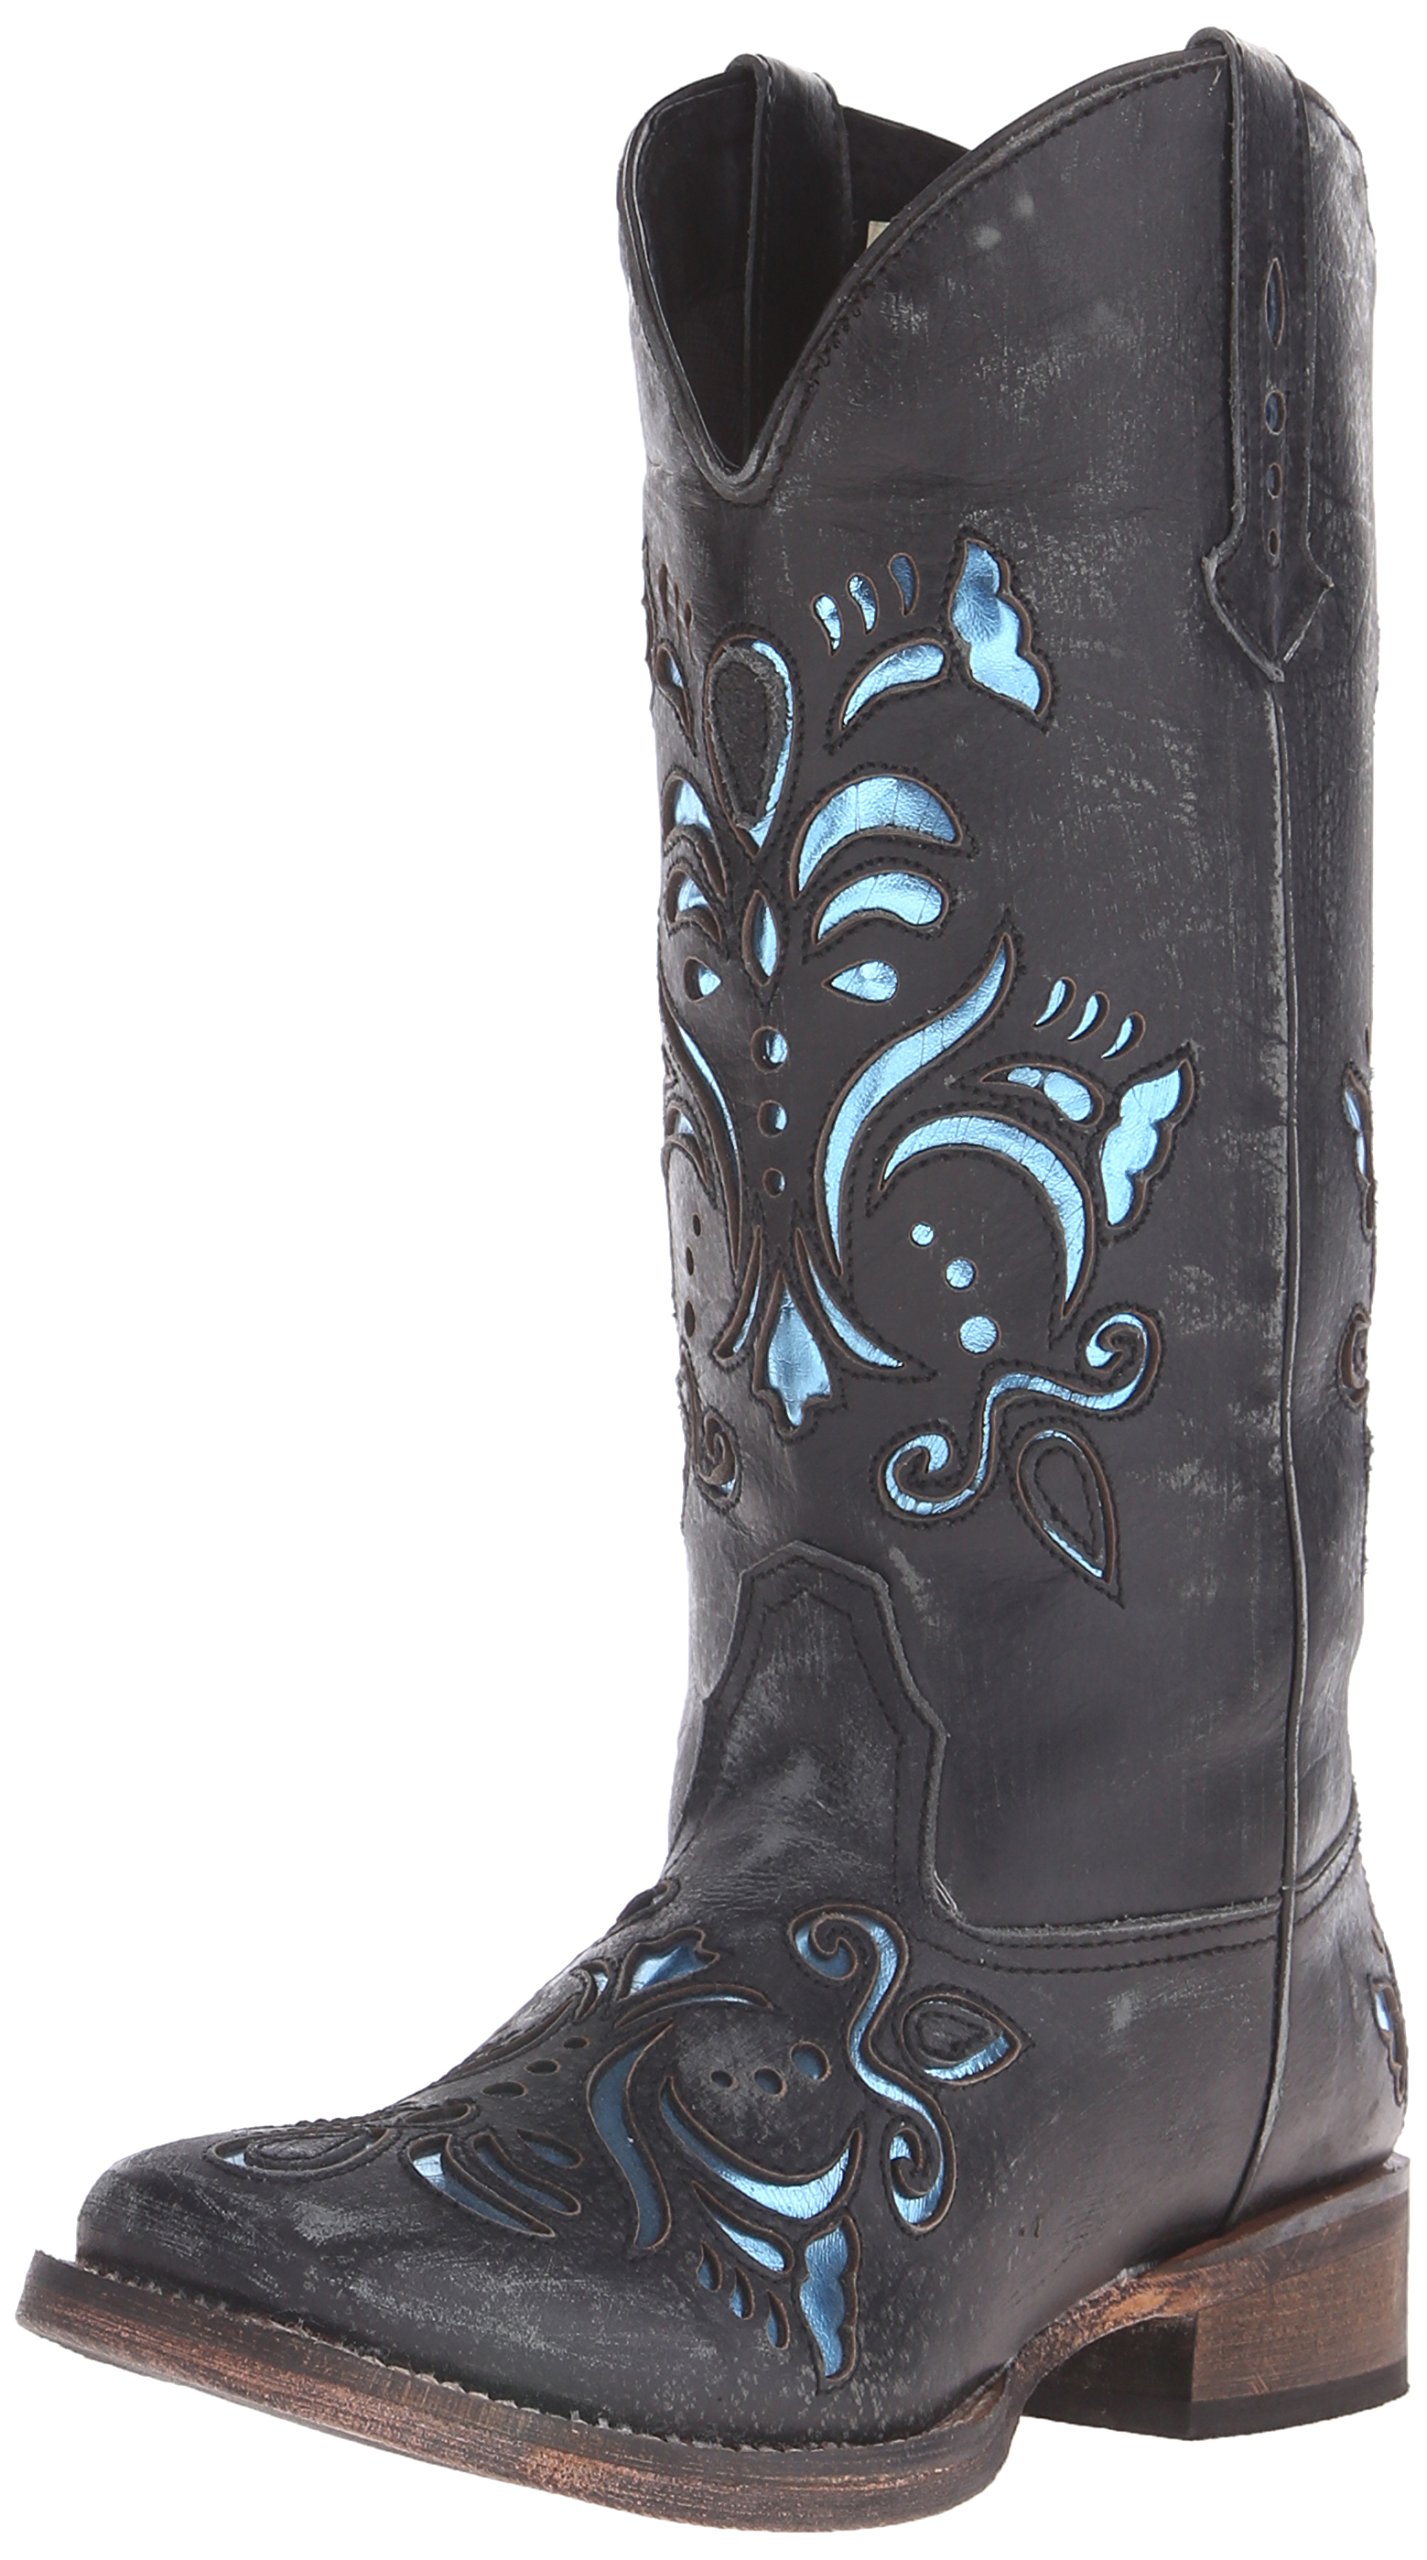 Roper Women's Belle Western Boot, Black, 7 M US